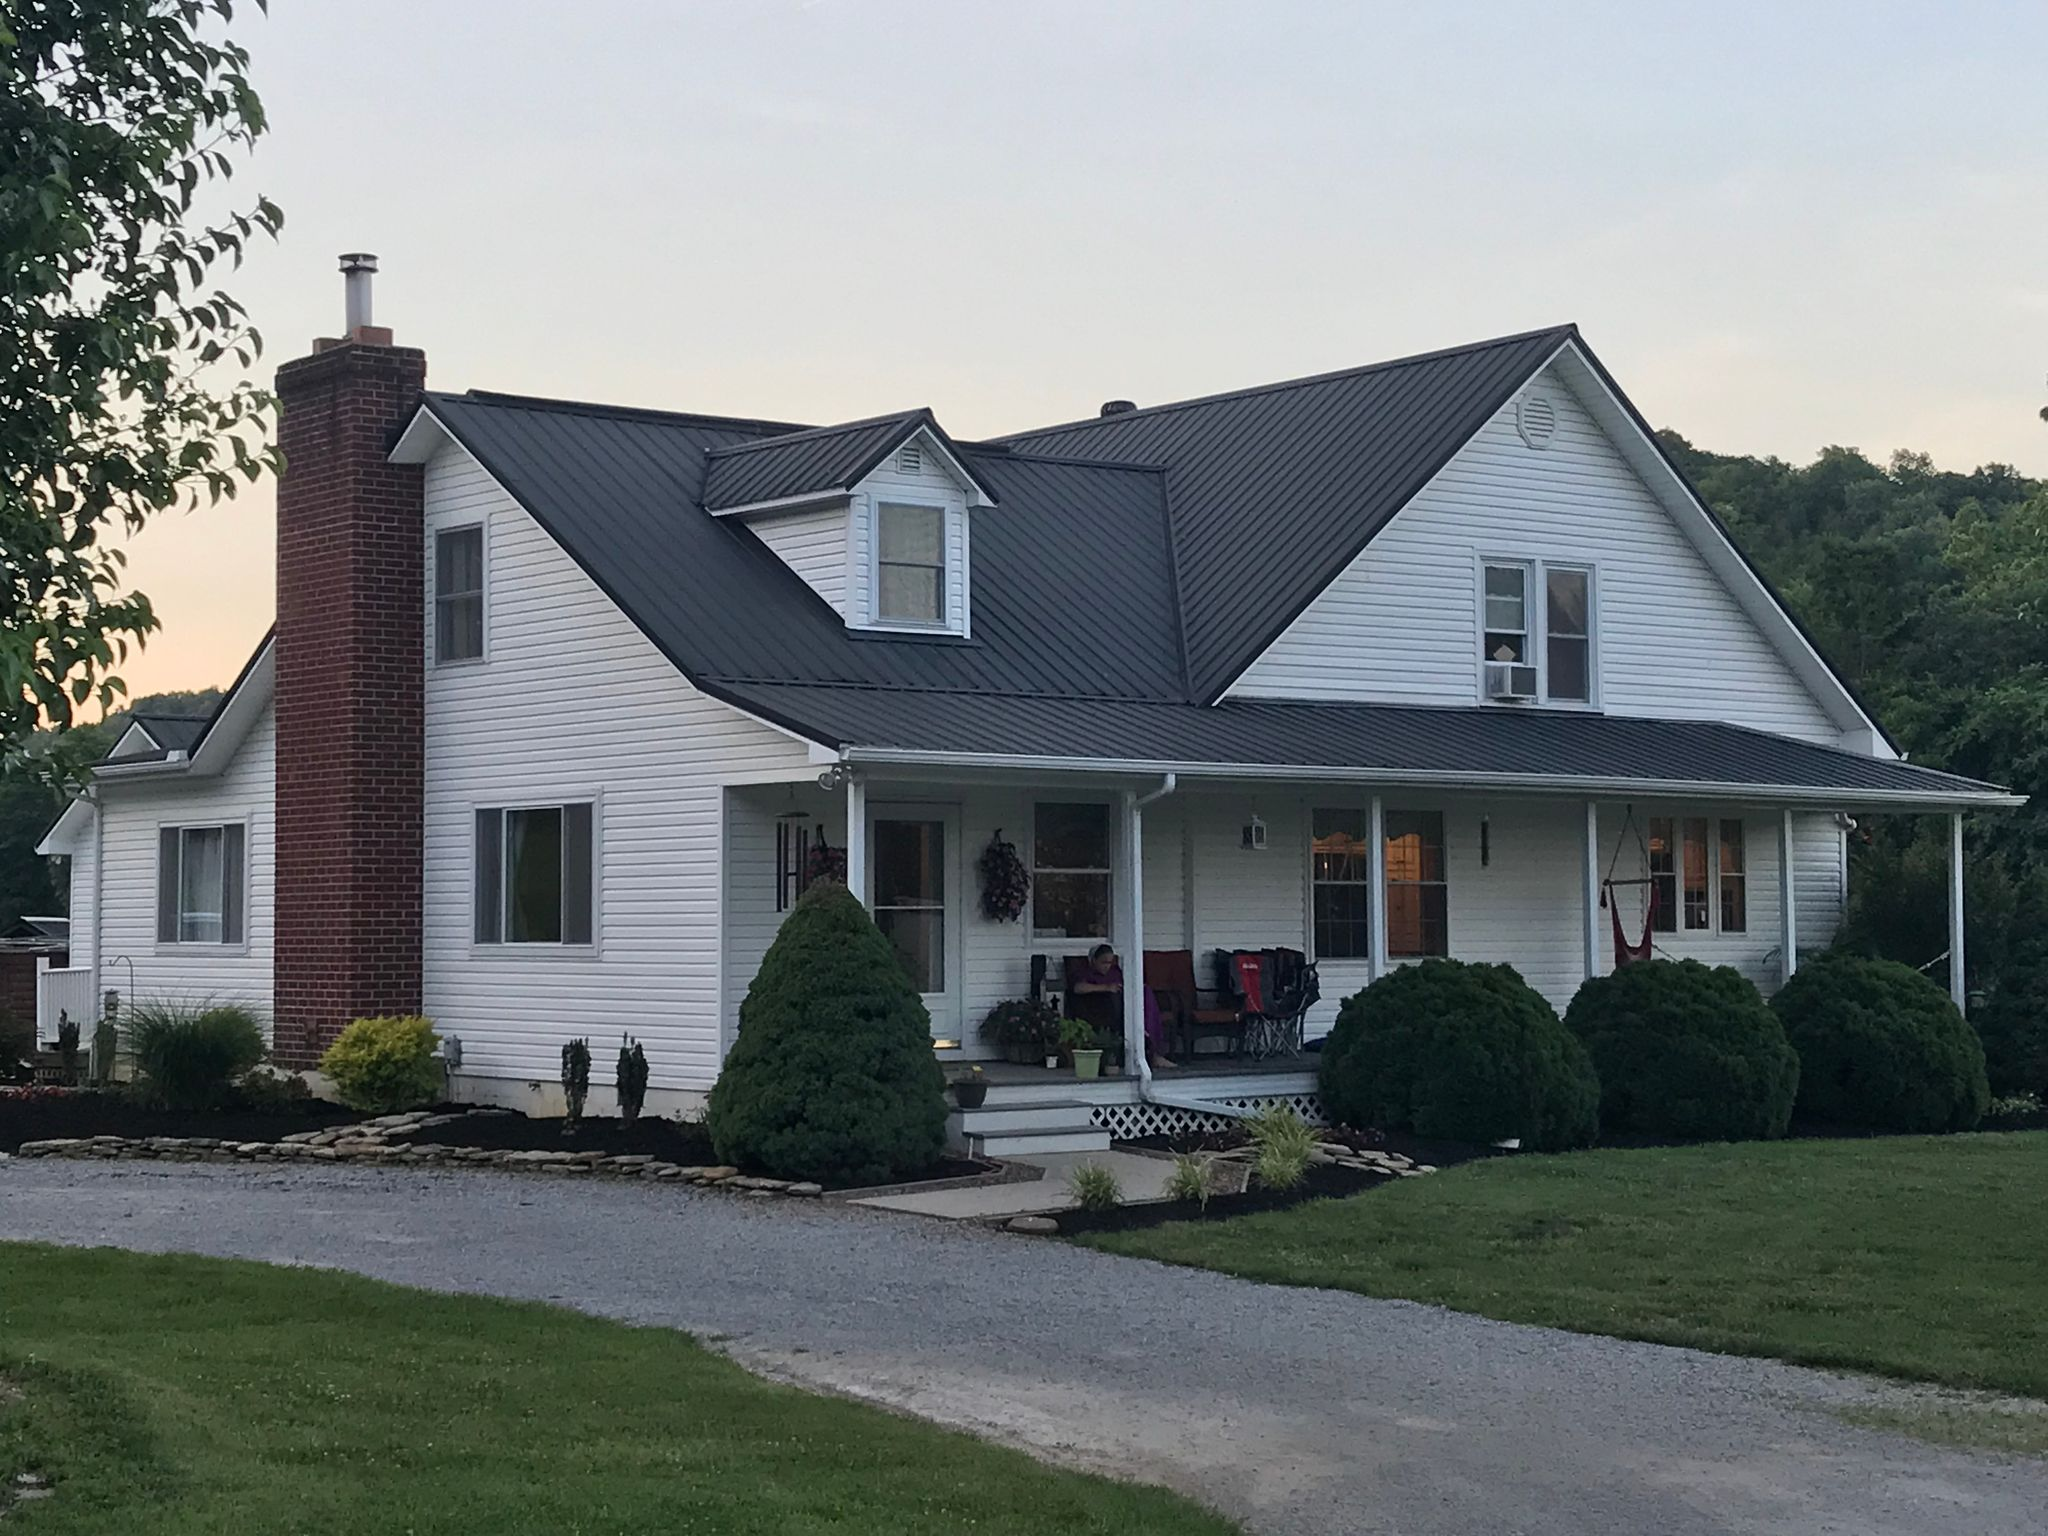 189 Pa Duerson Rd, Burkesville, KY 42717   4 Bed, 3 Bath   66 Photos |  Trulia